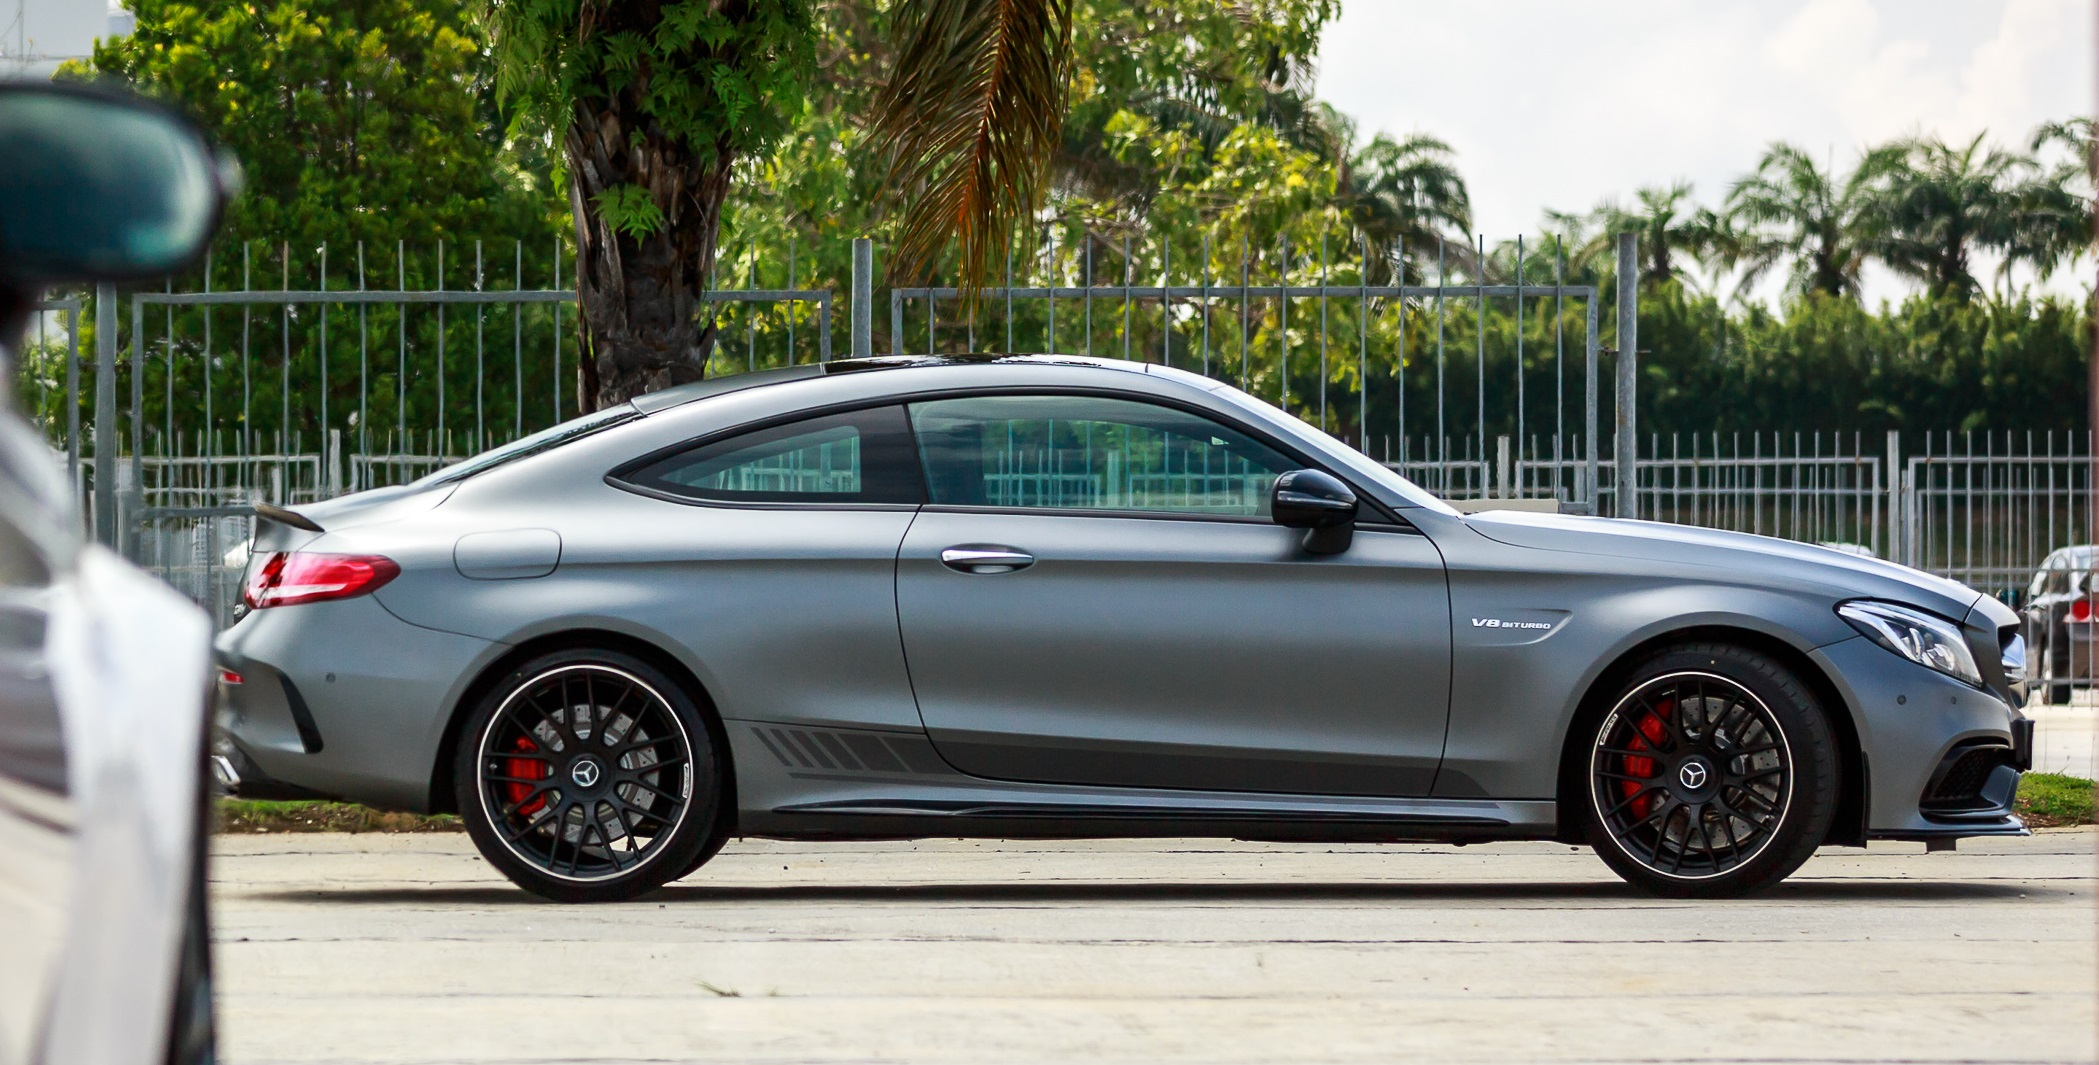 mercedes-amg-c-63-s-coupe-8a